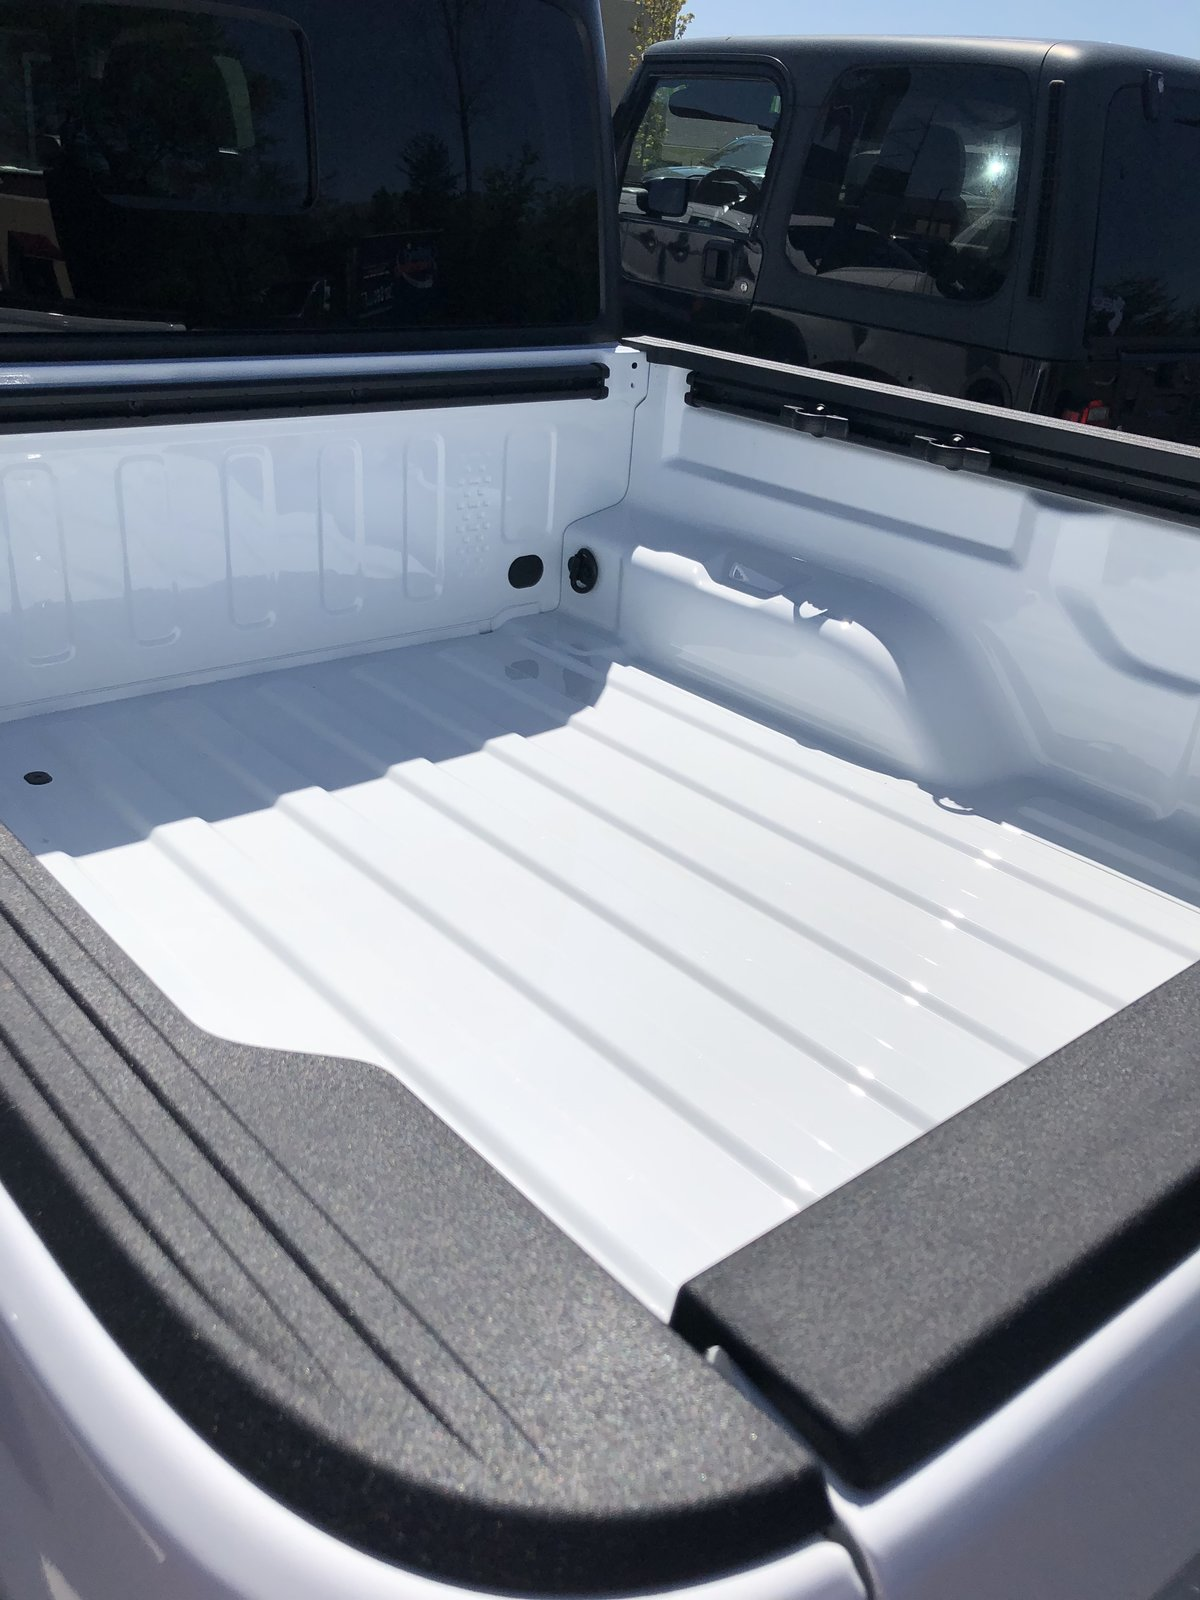 White Bed Liner Paint : white, liner, paint, Line-X, Spray, Liner, Applied, Gladiator, Forum, JeepGladiatorForum.com